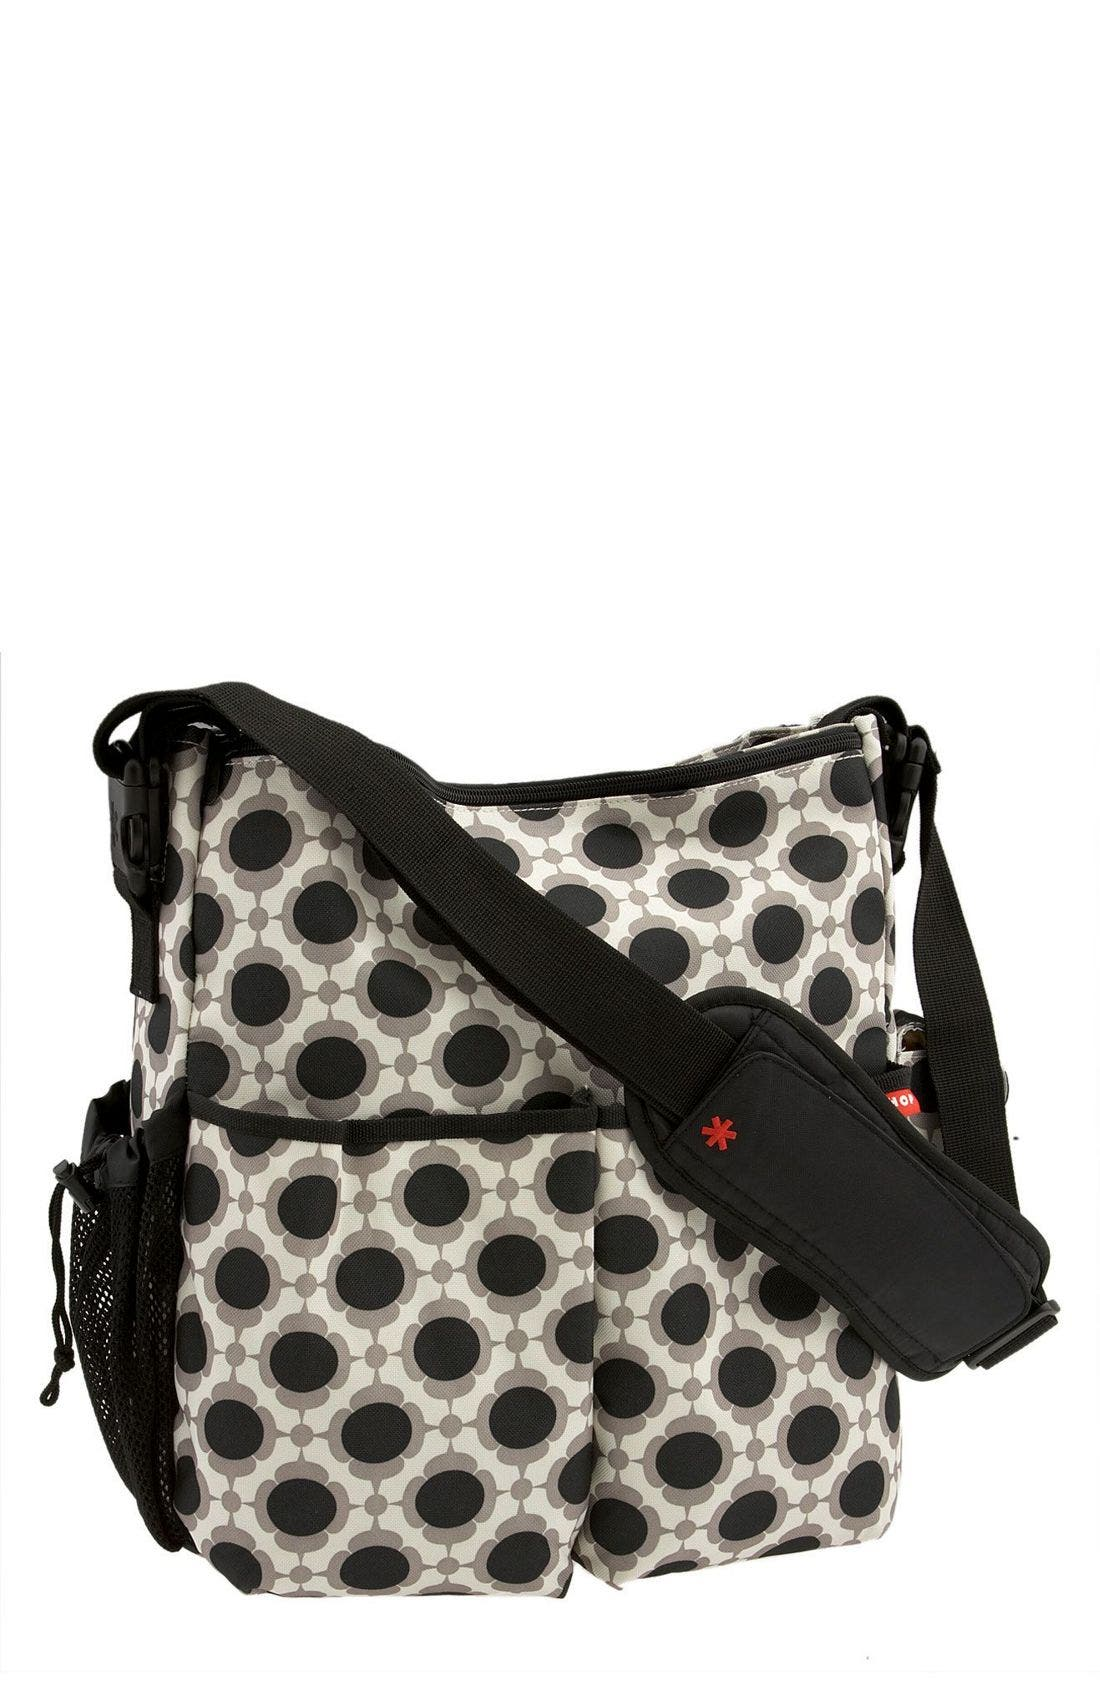 Alternate Image 1 Selected - Skip Hop 'Duo' Diaper Bag